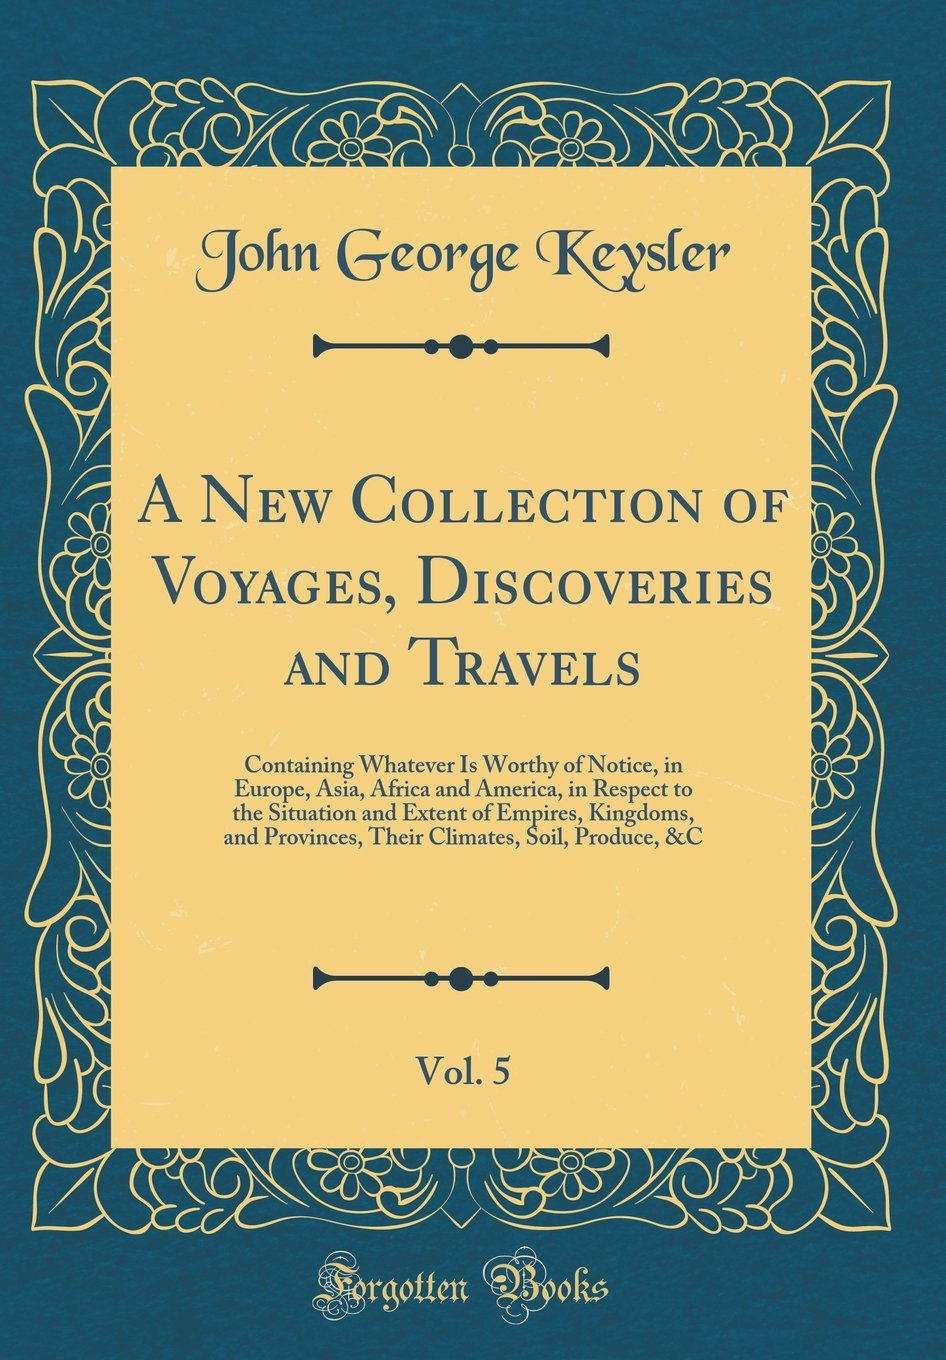 Read Online A New Collection of Voyages, Discoveries and Travels, Vol. 5: Containing Whatever Is Worthy of Notice, in Europe, Asia, Africa and America, in Respect ... Provinces, Their Climates, Soil, Produce, &C pdf